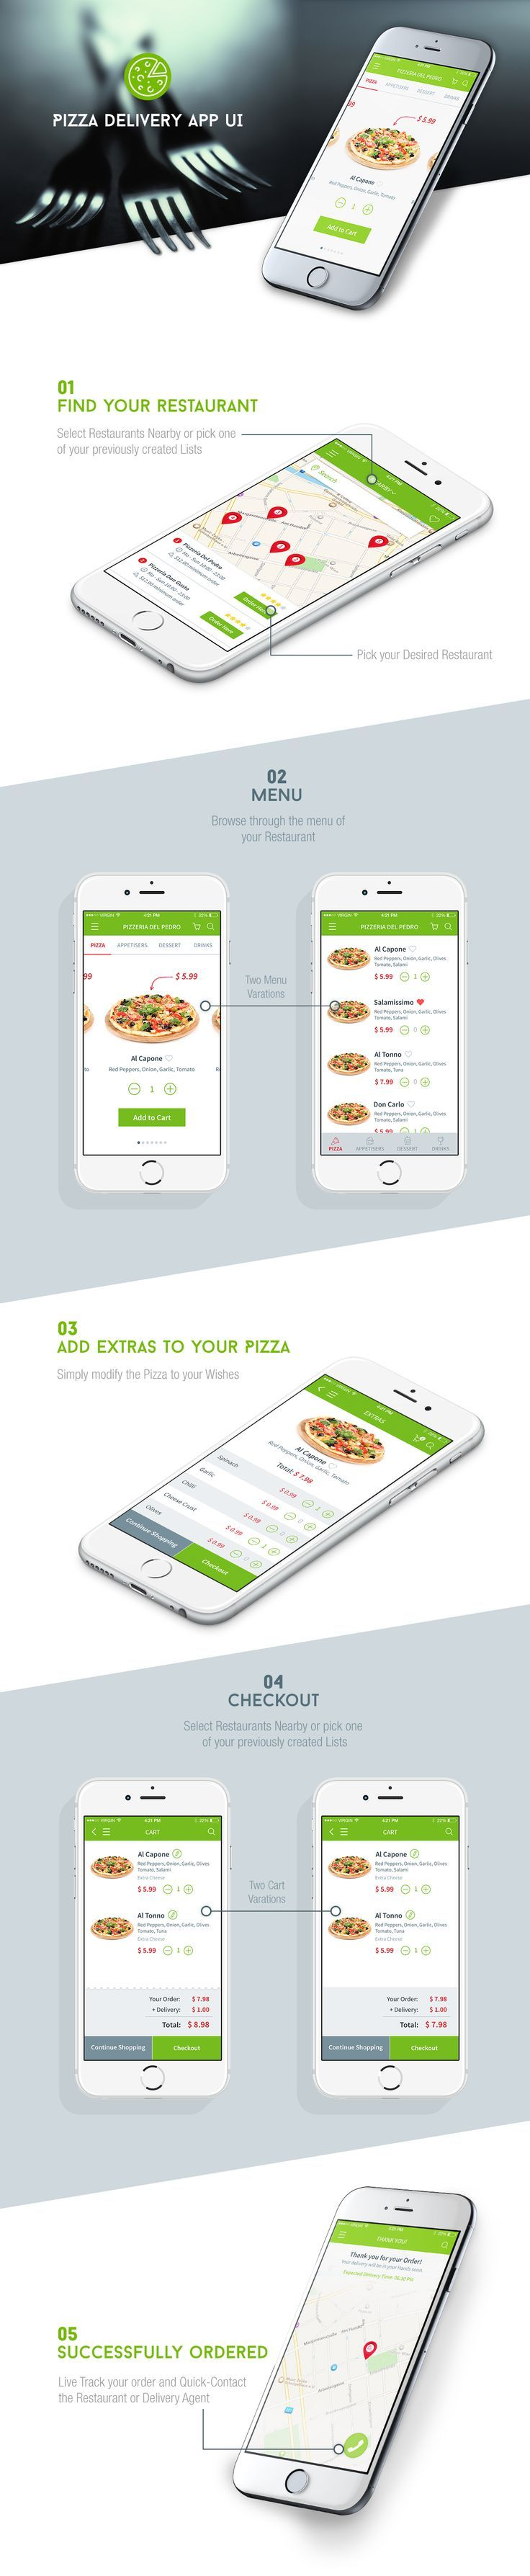 Pizza Delivery #app #ui #design: